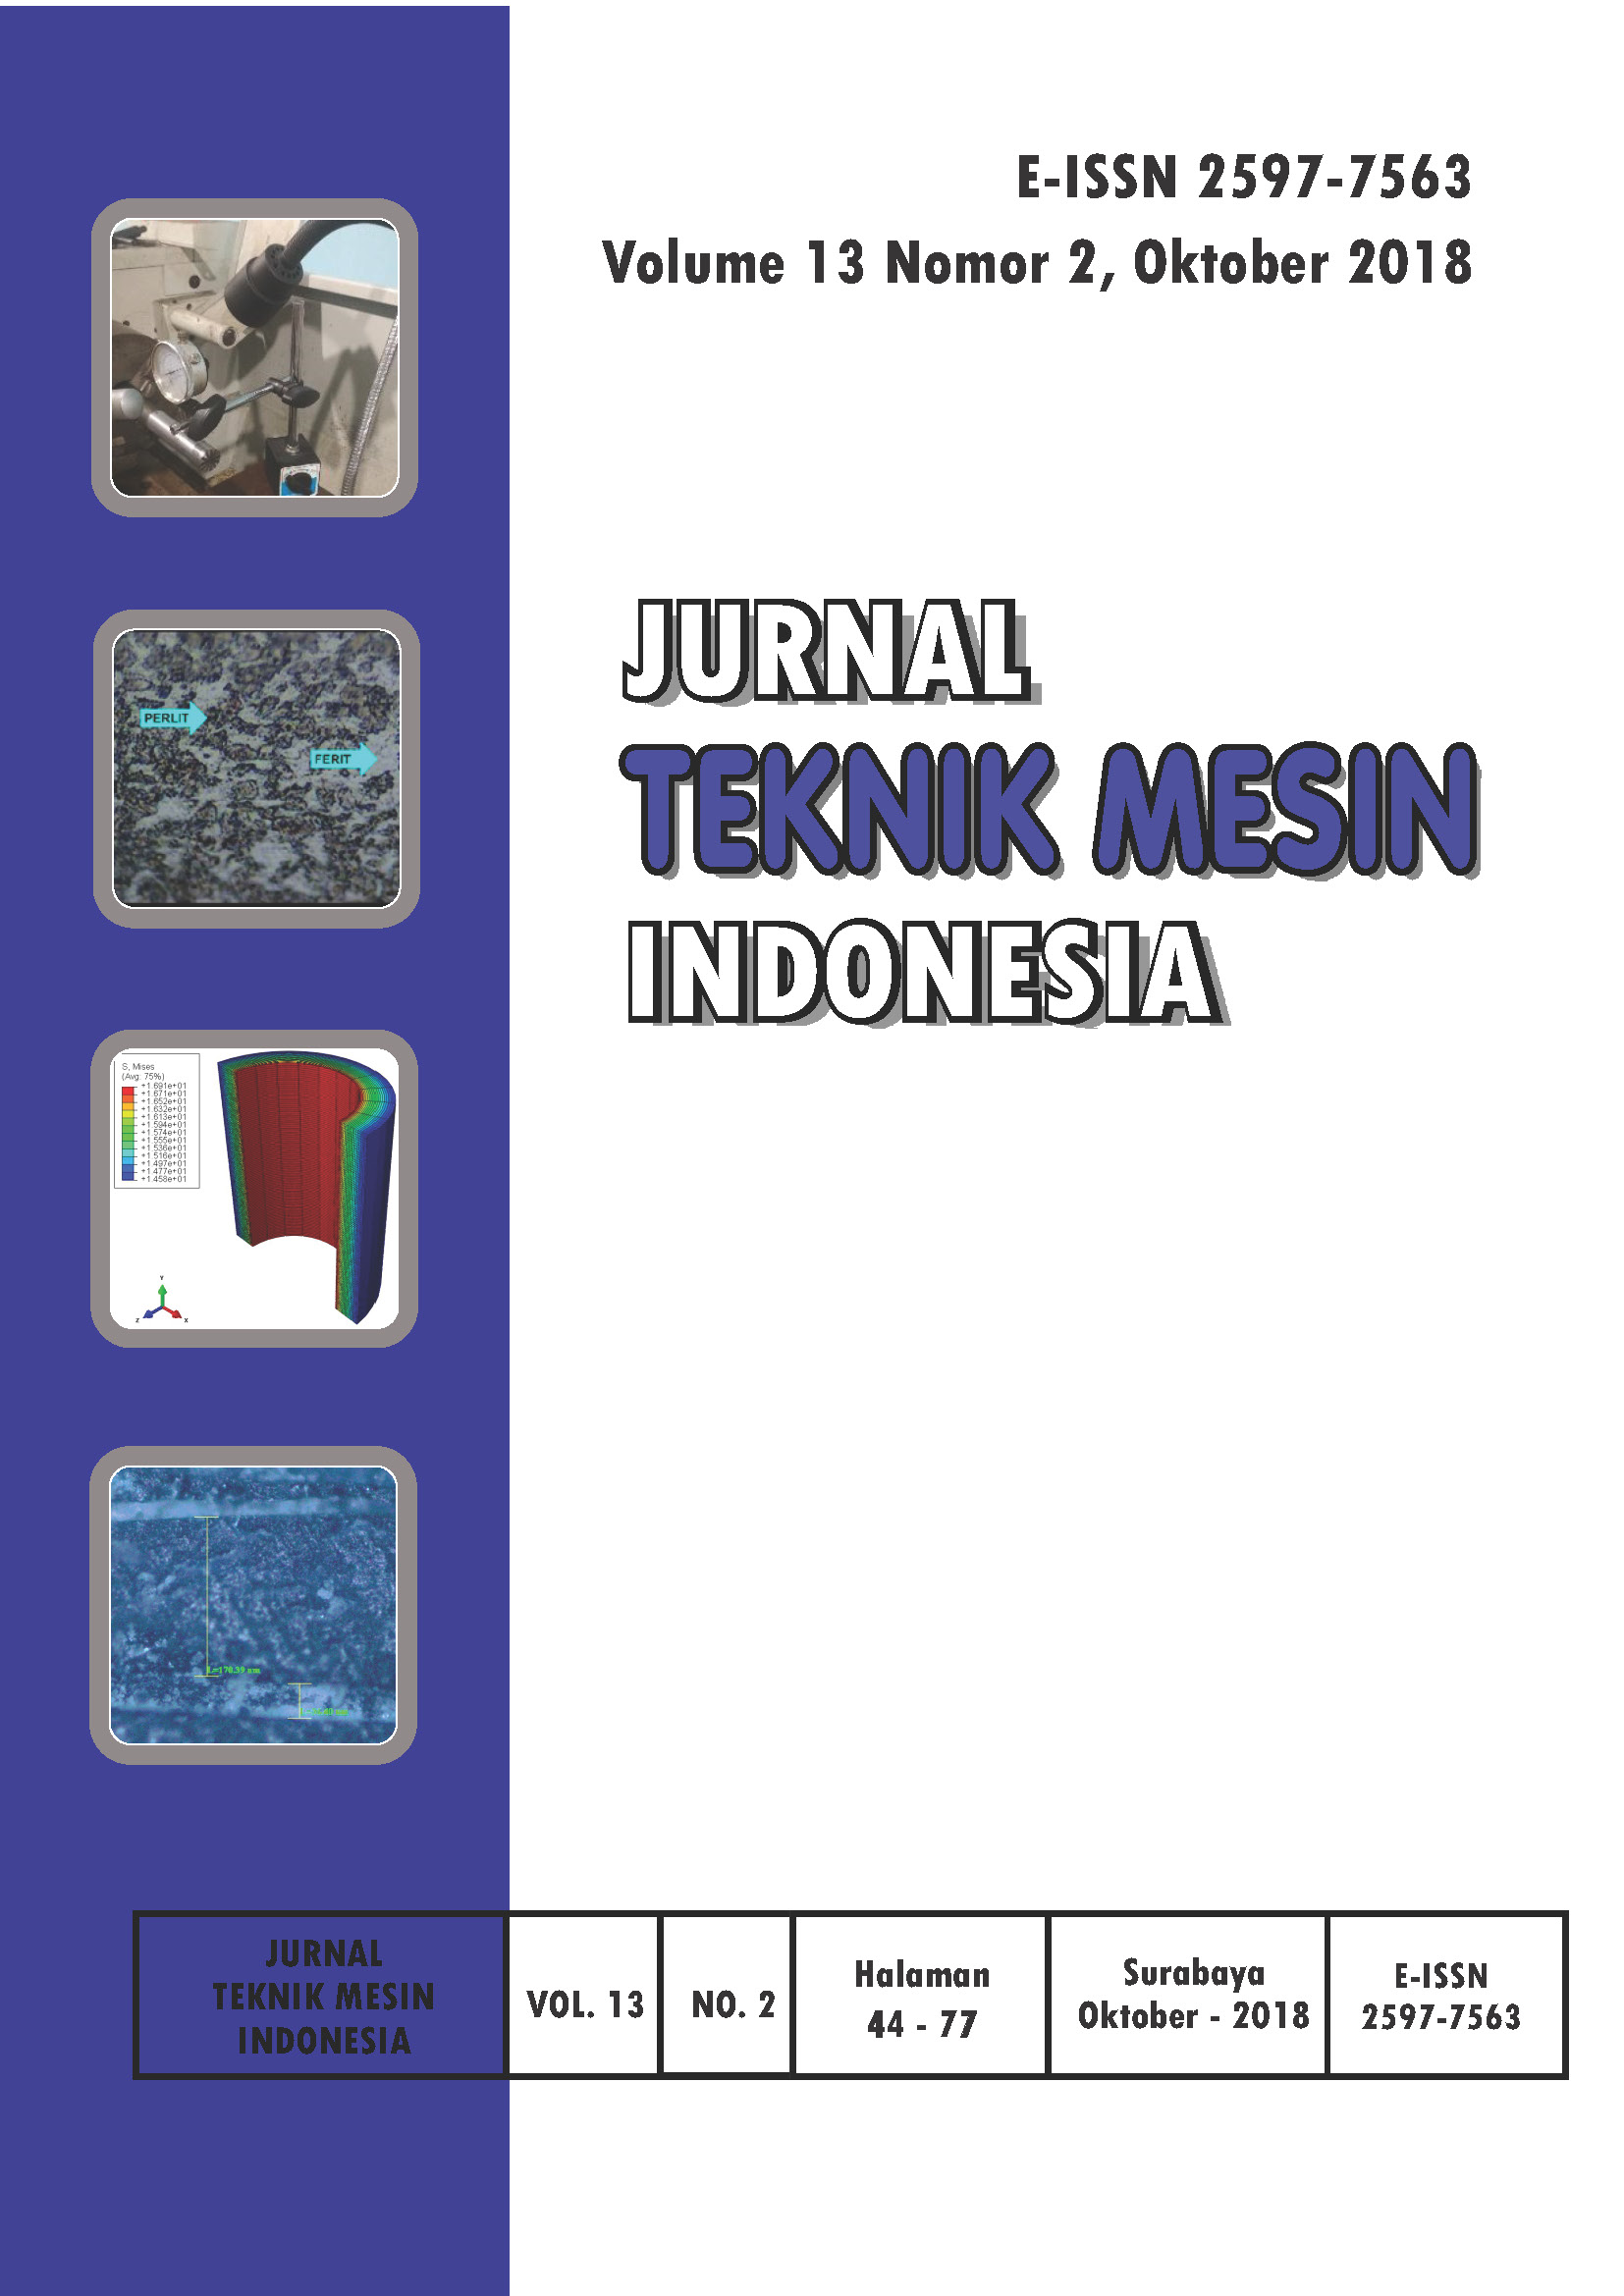 Jurnal Teknik Mesin Indonesia Vol 13 No 2 Oktober 2018